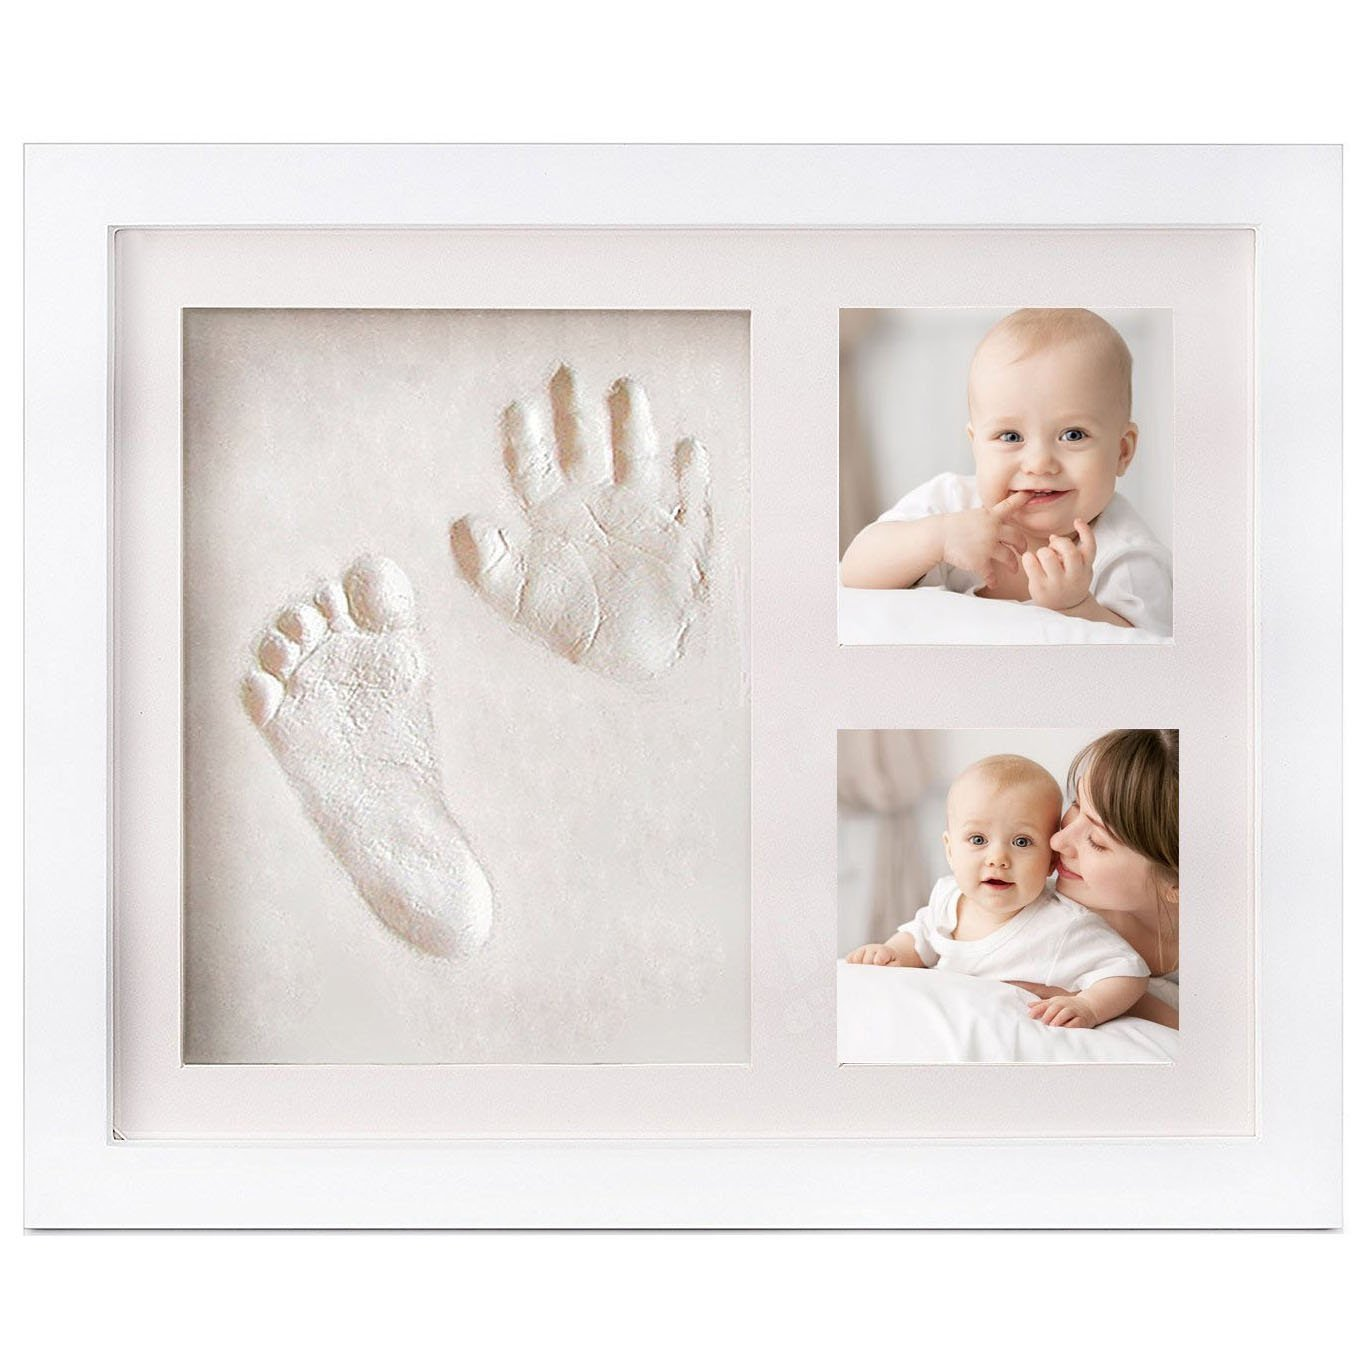 Elsatsang Best Baby Handprint and Footprint Photo Frame Kit - Baby Keepsake Preserves Priceless Memories,Non Toxic and Safe Clay ,Quality Wood Frame with Safe Acrylic Glass(White)